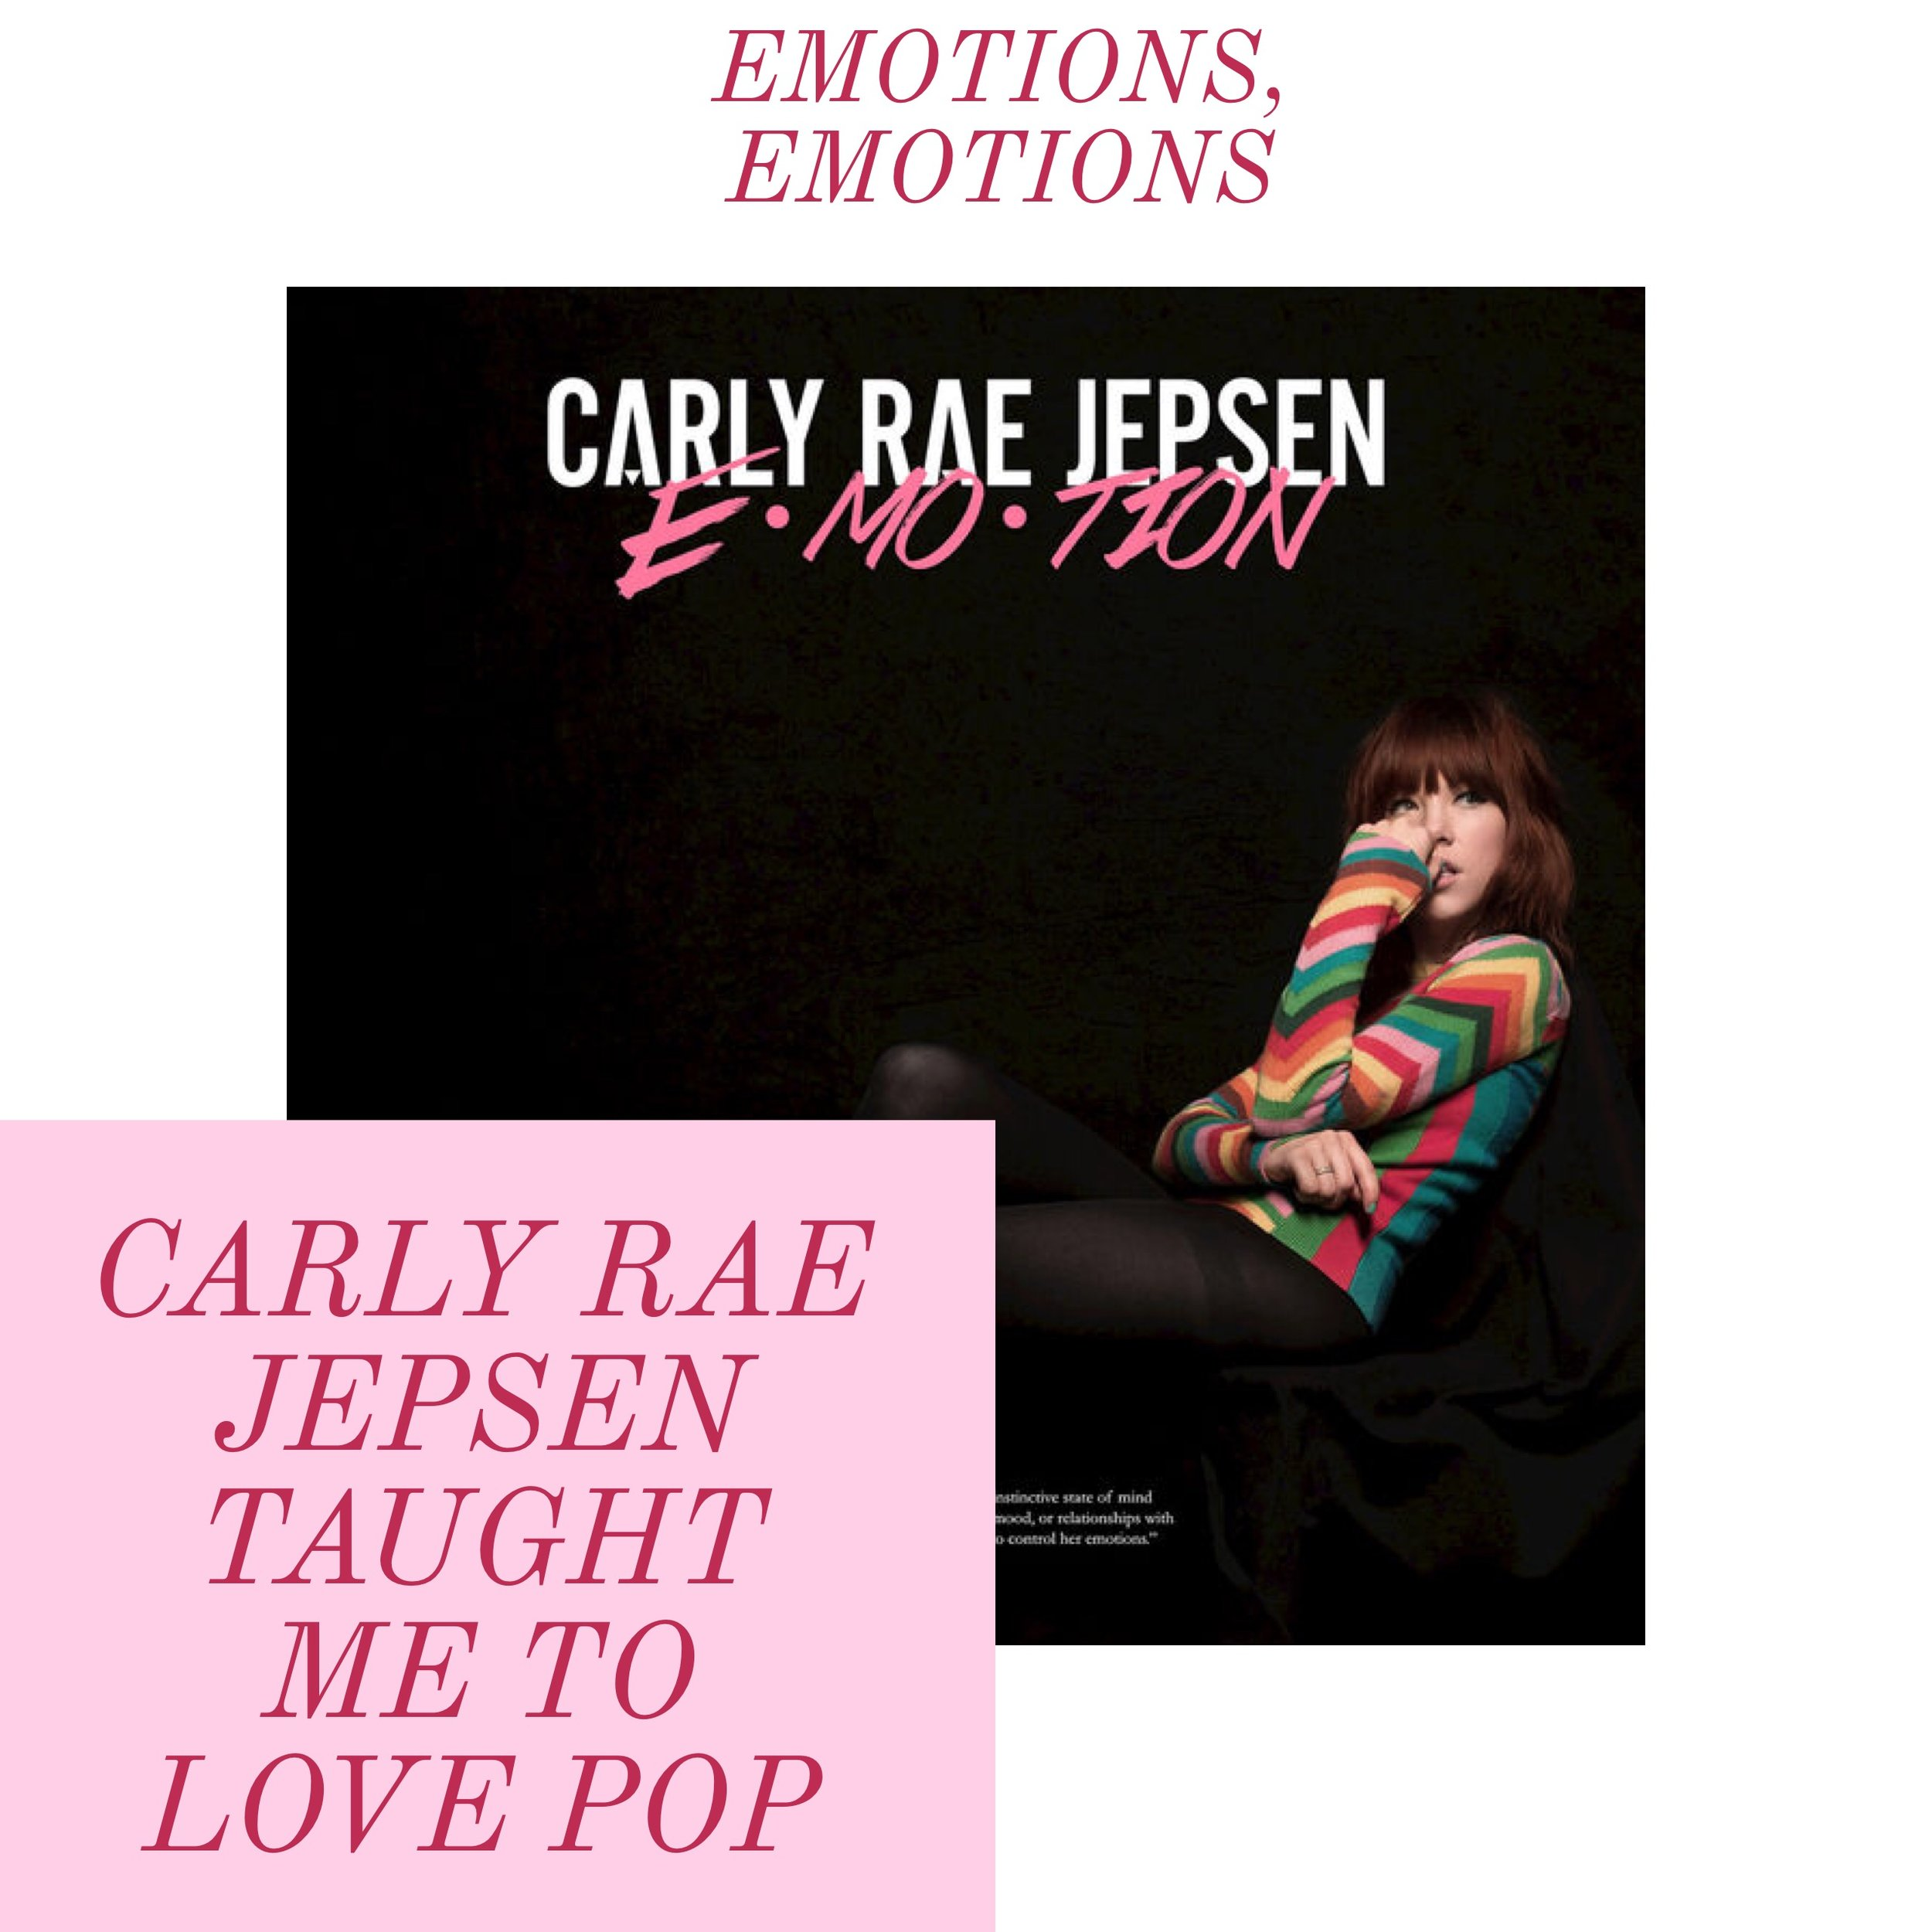 Image rights to Carly Rae Jepsen. Edit done on Adobe Spark.